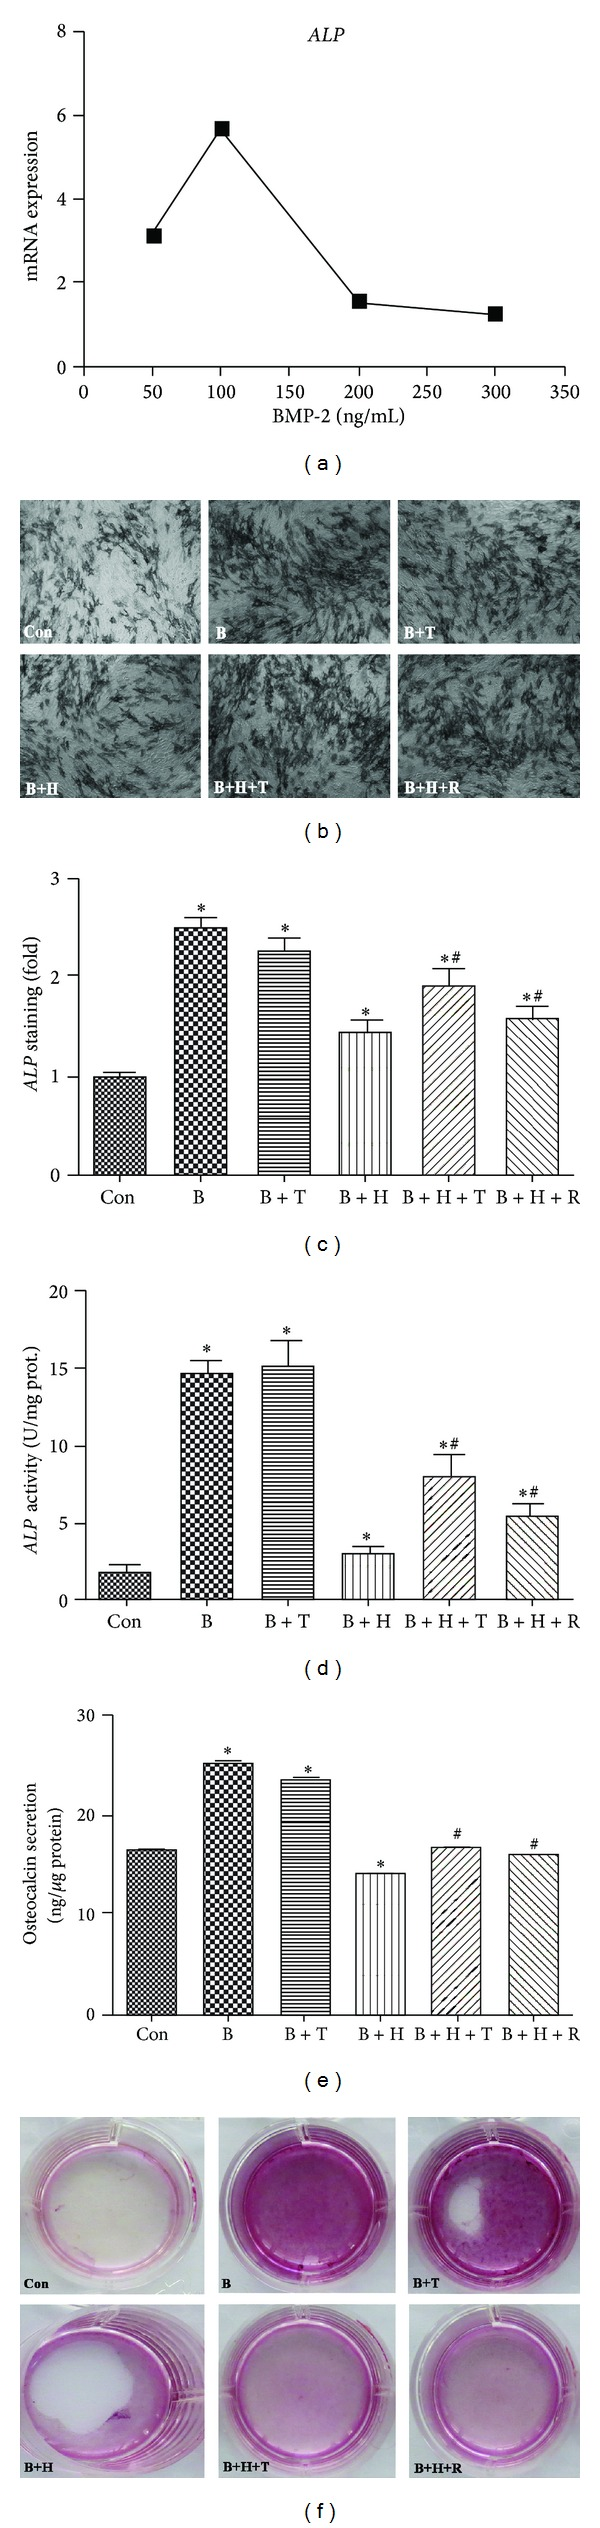 Tanshinol counteracts inhibitory effect of oxidative stress on osteoblastic differentiation. (a) C2C12 cells were treated with increasing concentrations of BMP-2 for 24 h to determine the optimal concentration using qRT-PCR. Cells were cotreated with BMP-2 (100 ng/mL) and Tanshinol (1 μ M) or Resveratrol (1 μ M) in the presence or absence of H 2 O 2 (200 μ M), and determinations were made as follows. (b) Cells were stained using ALP staining Kit, and (c) the percentage of positively stained cell populations was counted by Image J software to analyse the extent of osteoblastic differentiation at day 3; (d) ALP activity in the cell lysates and (e) osteocalcin secretion in the supernatant of media were measured by ALP Assay Kit and ELISA Kit at day 3, respectively; (f) mineralization activity with the indicated treatments was stained using alizarin red S at day 10. Note: (1) Con (vehicle control); (2) B (BMP-2); (3) B + T (BMP-2 + Tanshinol); (4) B + H (BMP-2 + H 2 O 2 ); (5) B + H + T (BMP-2 + H 2 O 2 + Tanshinol); (6) B + H + R (BMP-2 + H 2 O 2 + Resveratrol). Data shown are the mean ± SEM of at least three independent experiments. * P